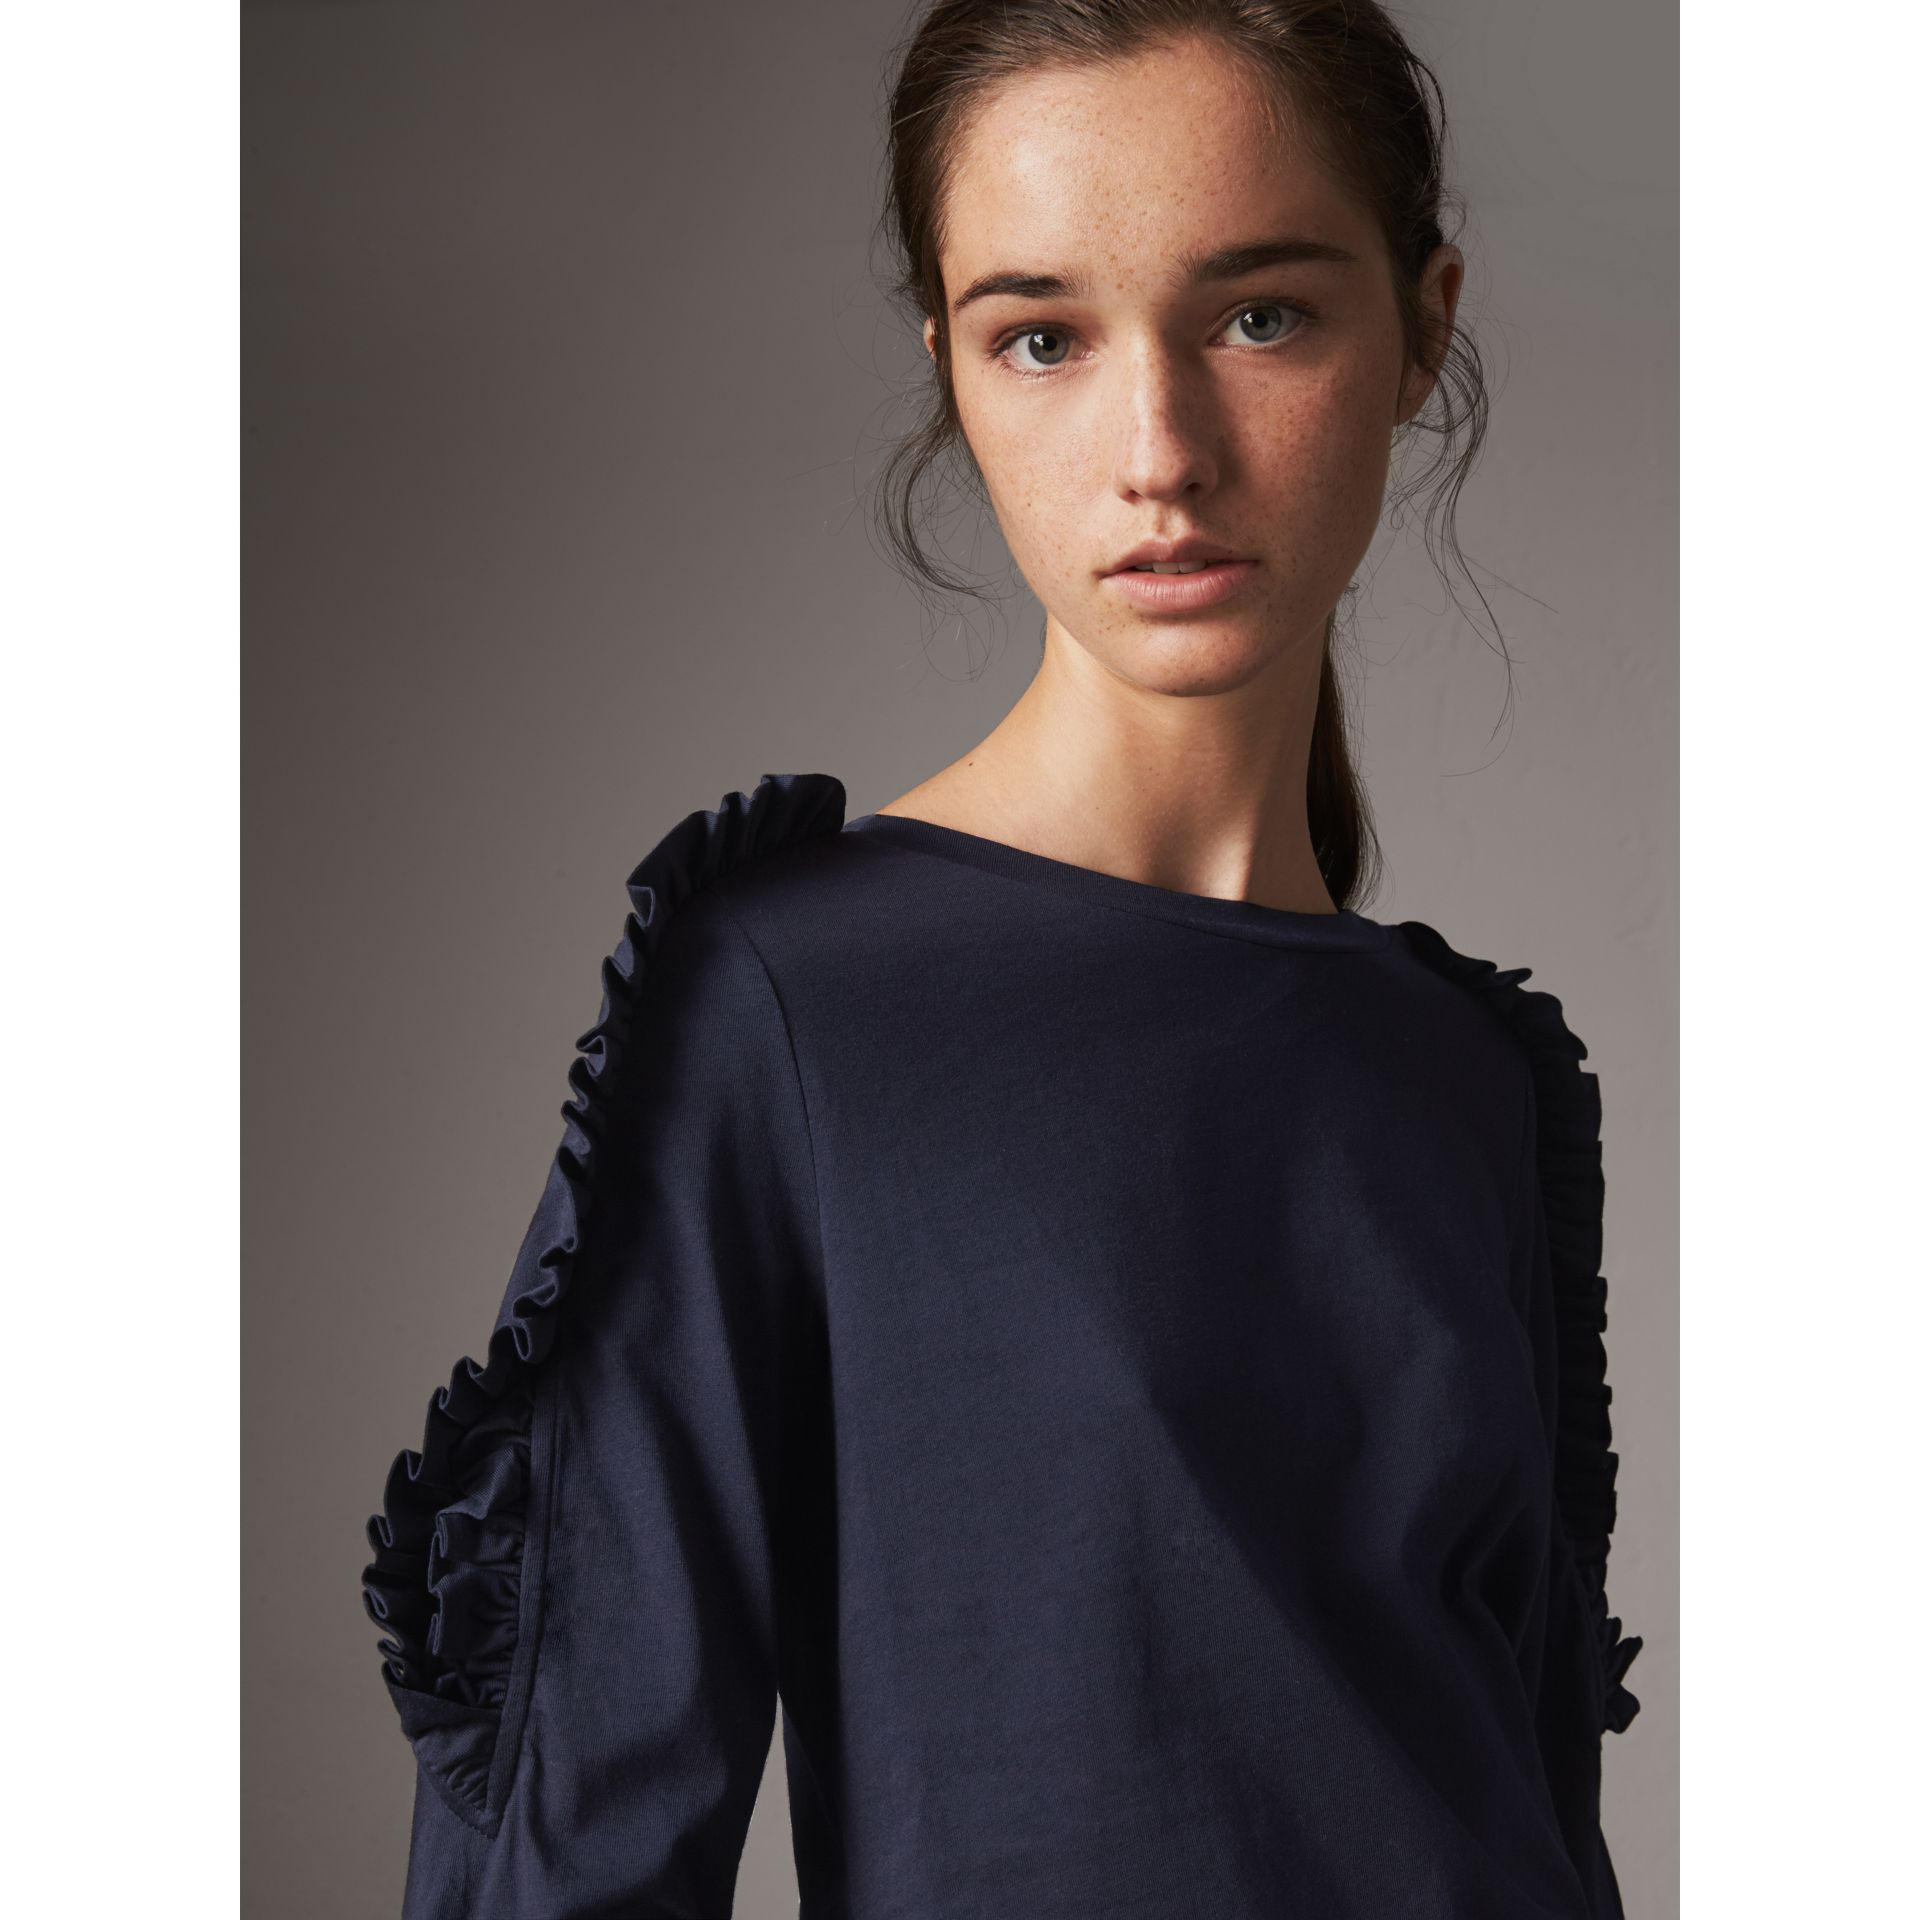 Ruffle Detail Cotton Top in True Navy - Women | Burberry - gallery image 1